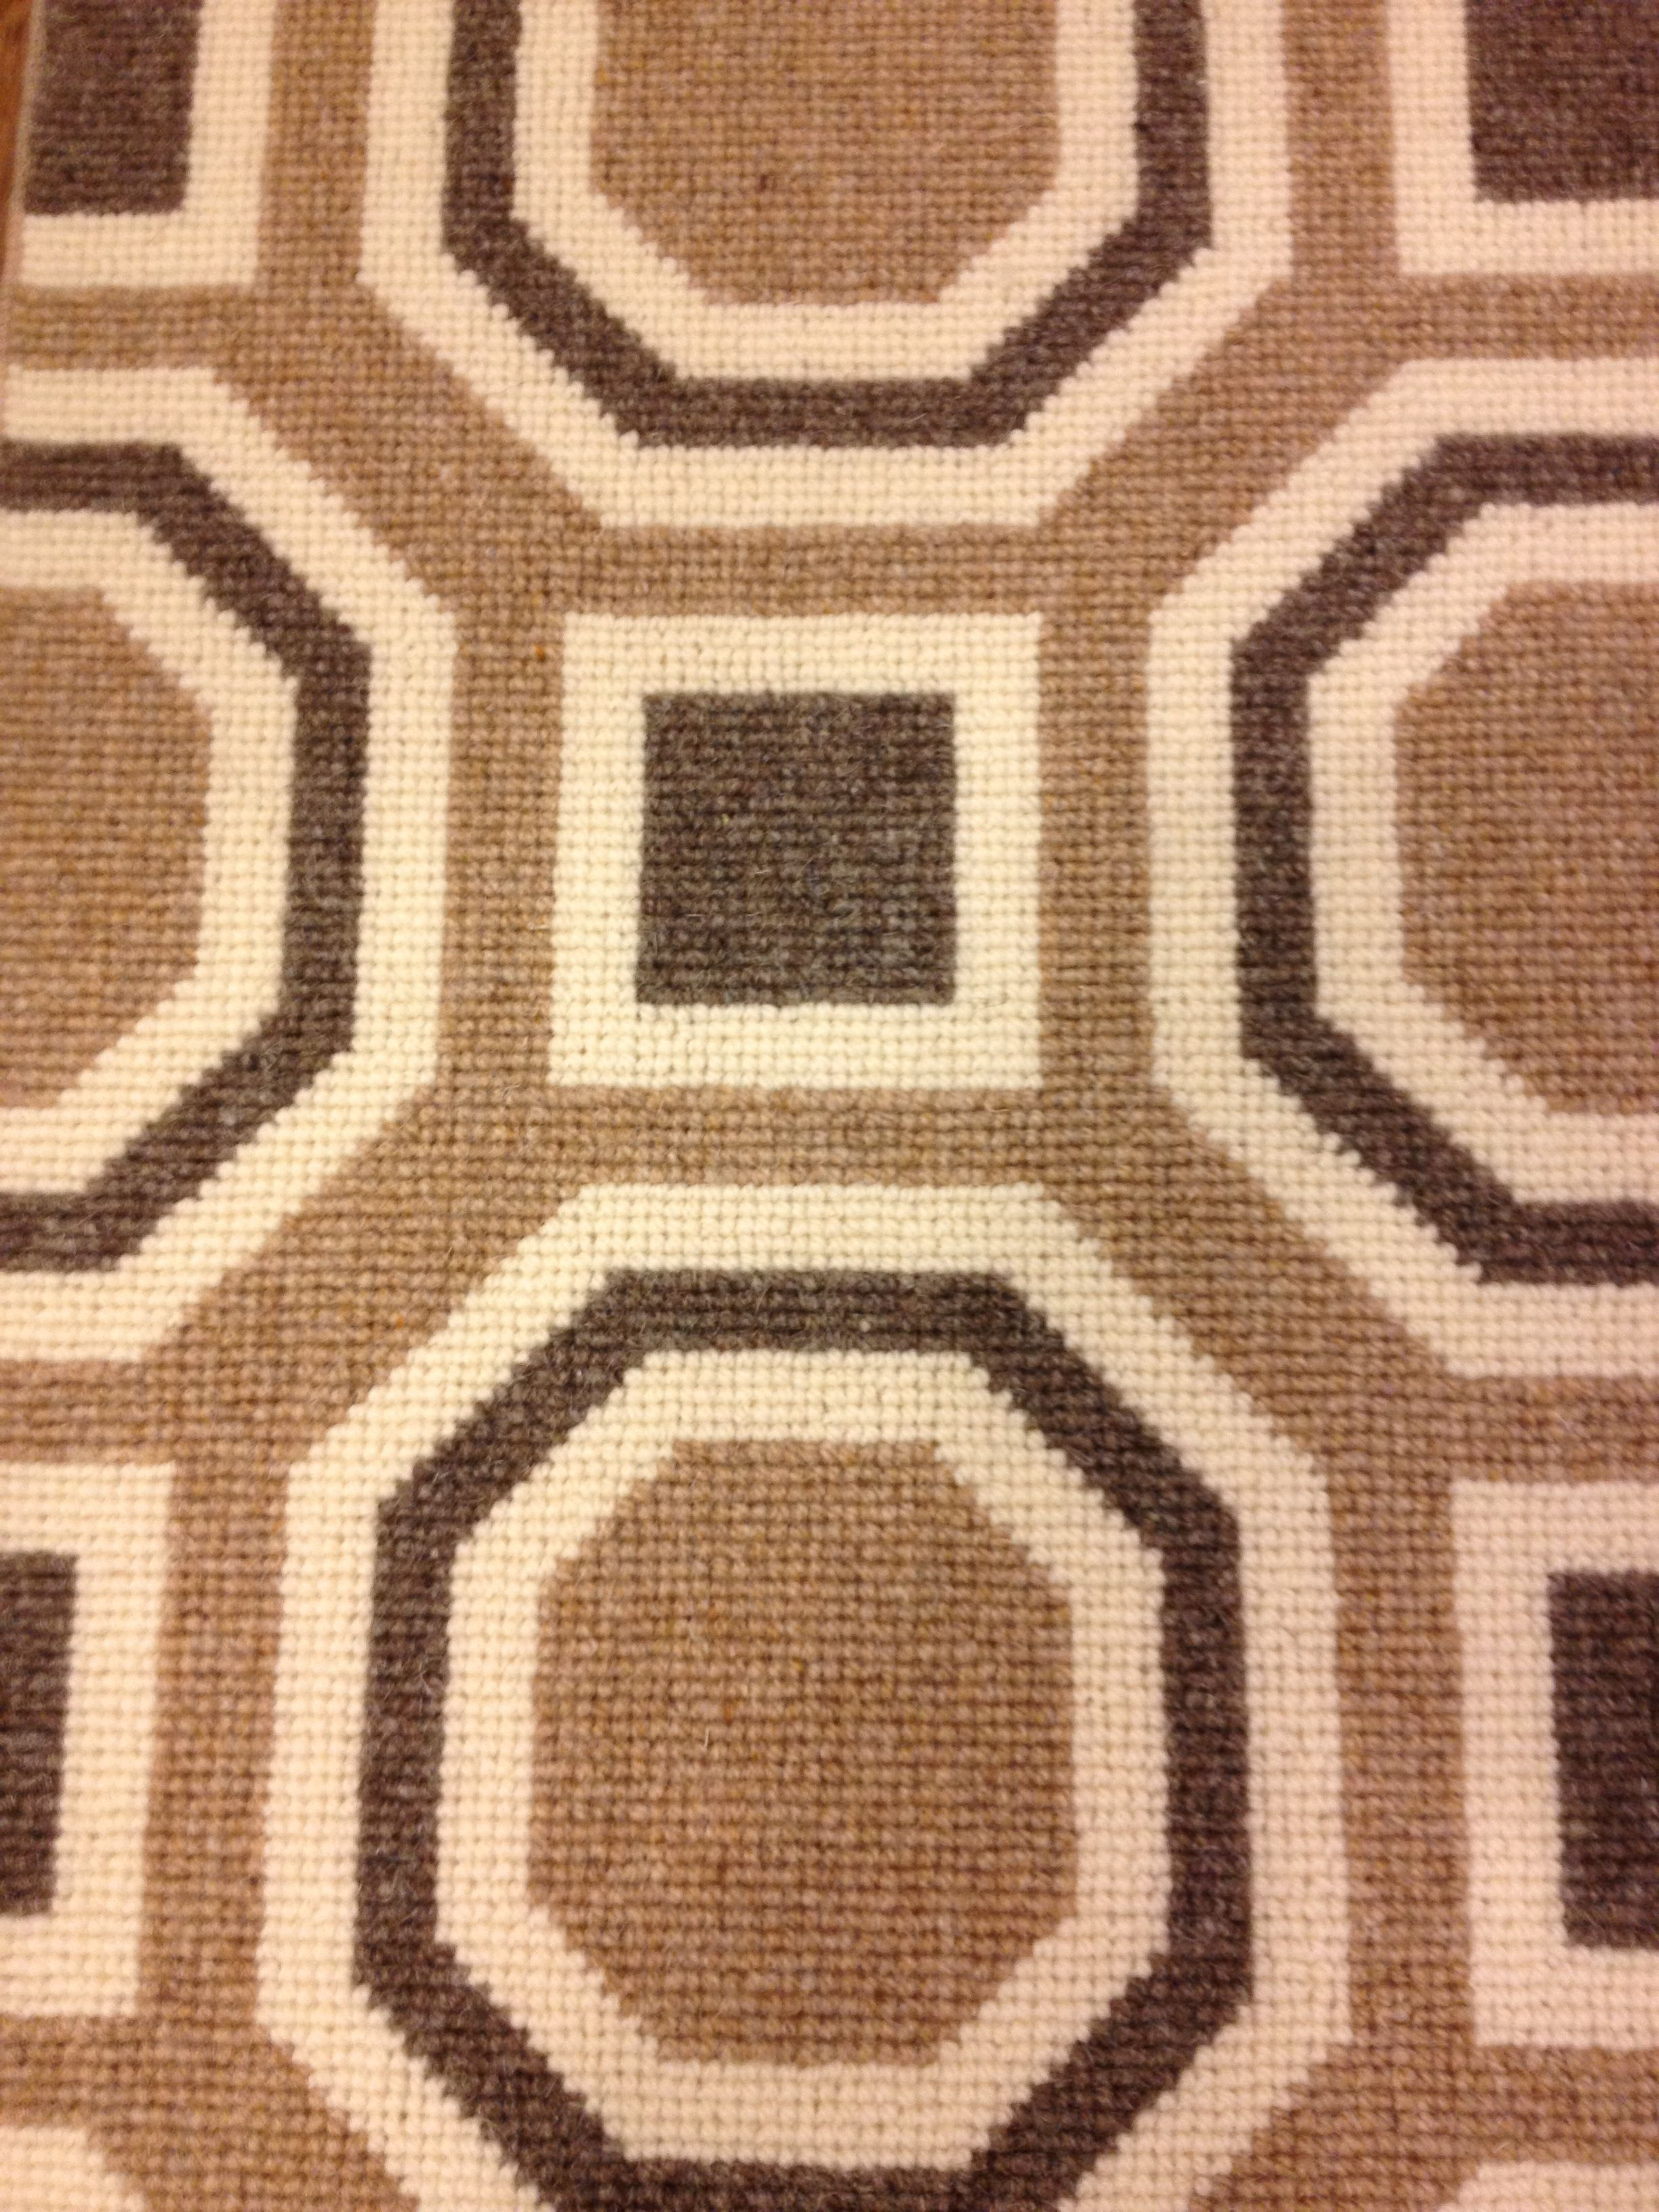 David Hicks Designed Wool Carpet Great Looking Octagon Geometric Pattern Offered For Wall To Installed Or Fabricated Into An Area Rug Of Any